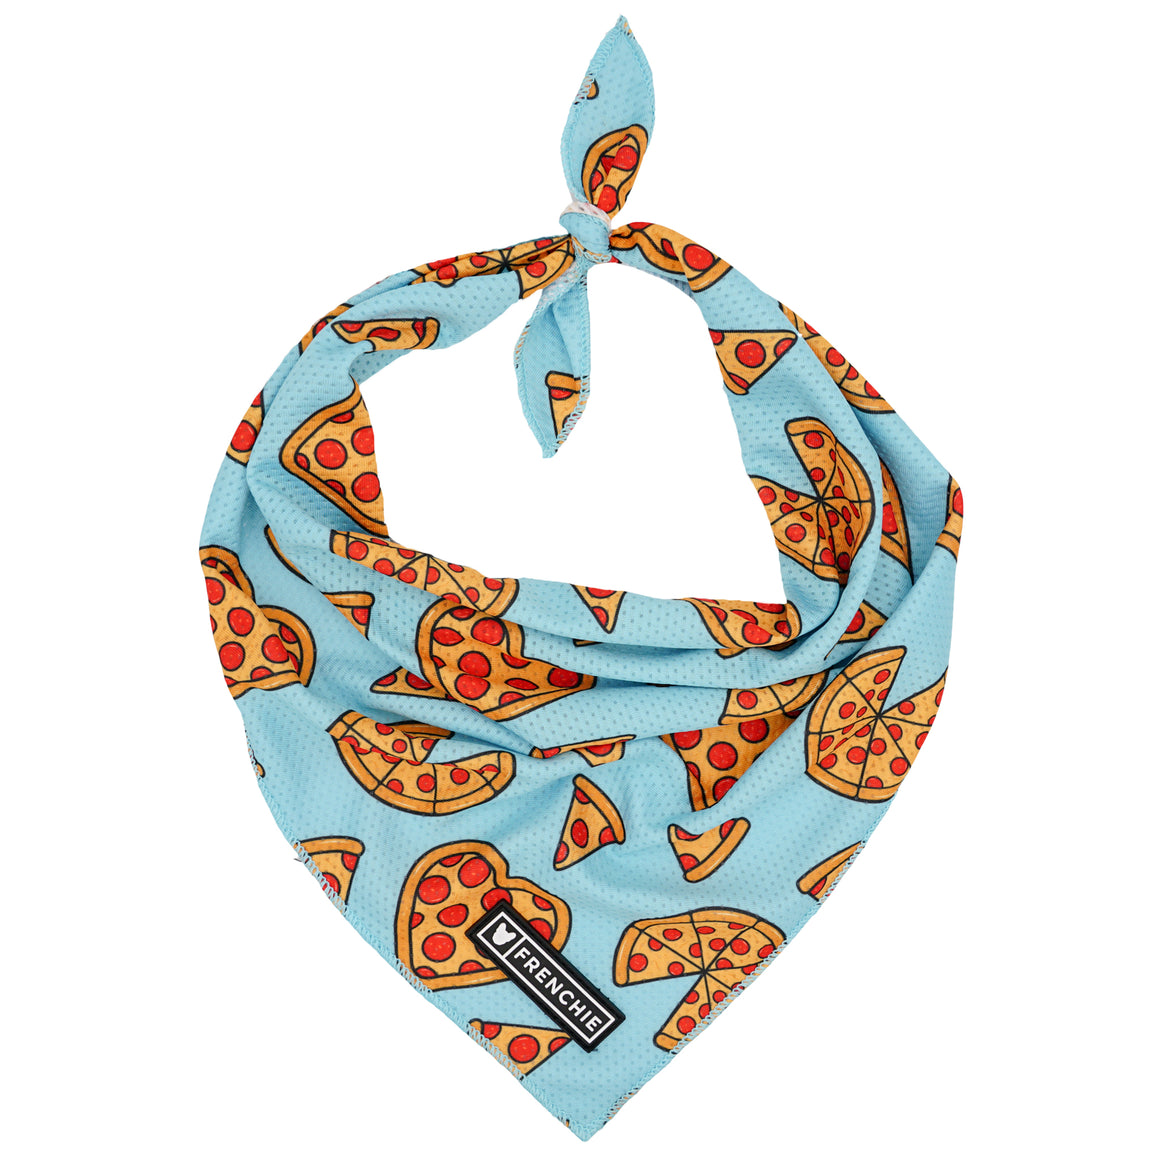 Frenchie Cooling Bandana - New York Pizza